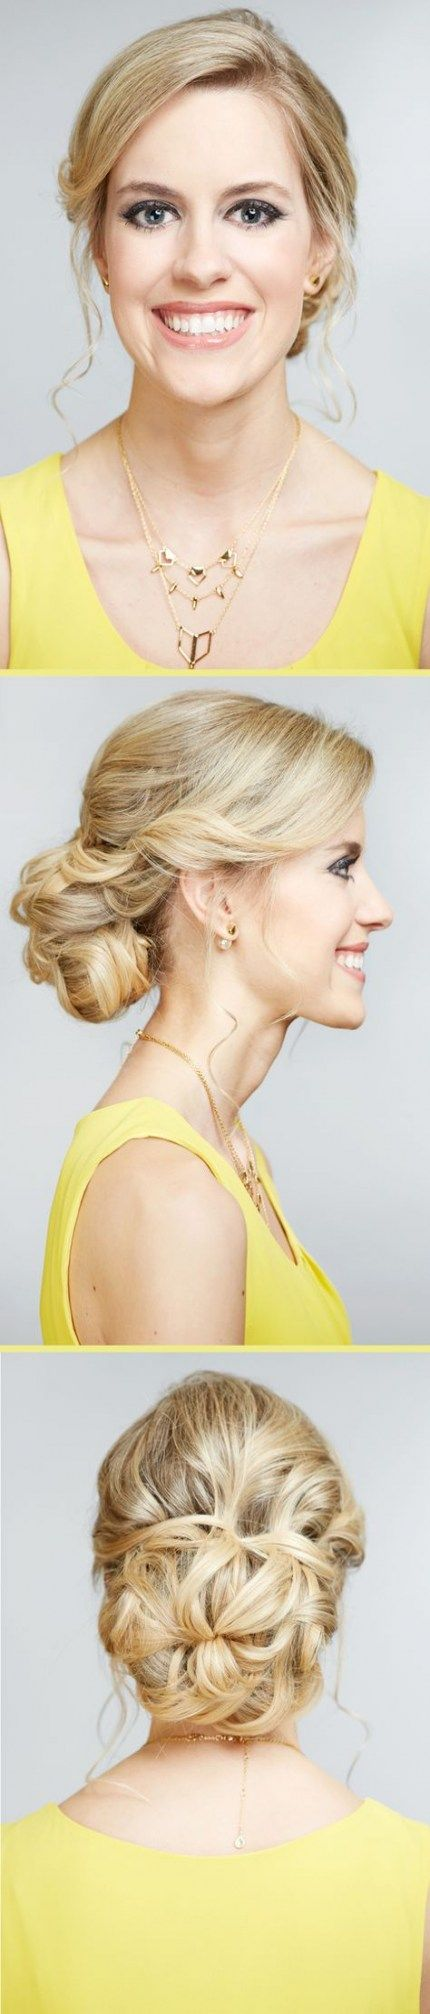 wedding hairstyles front and back faces 38 ideas | hair